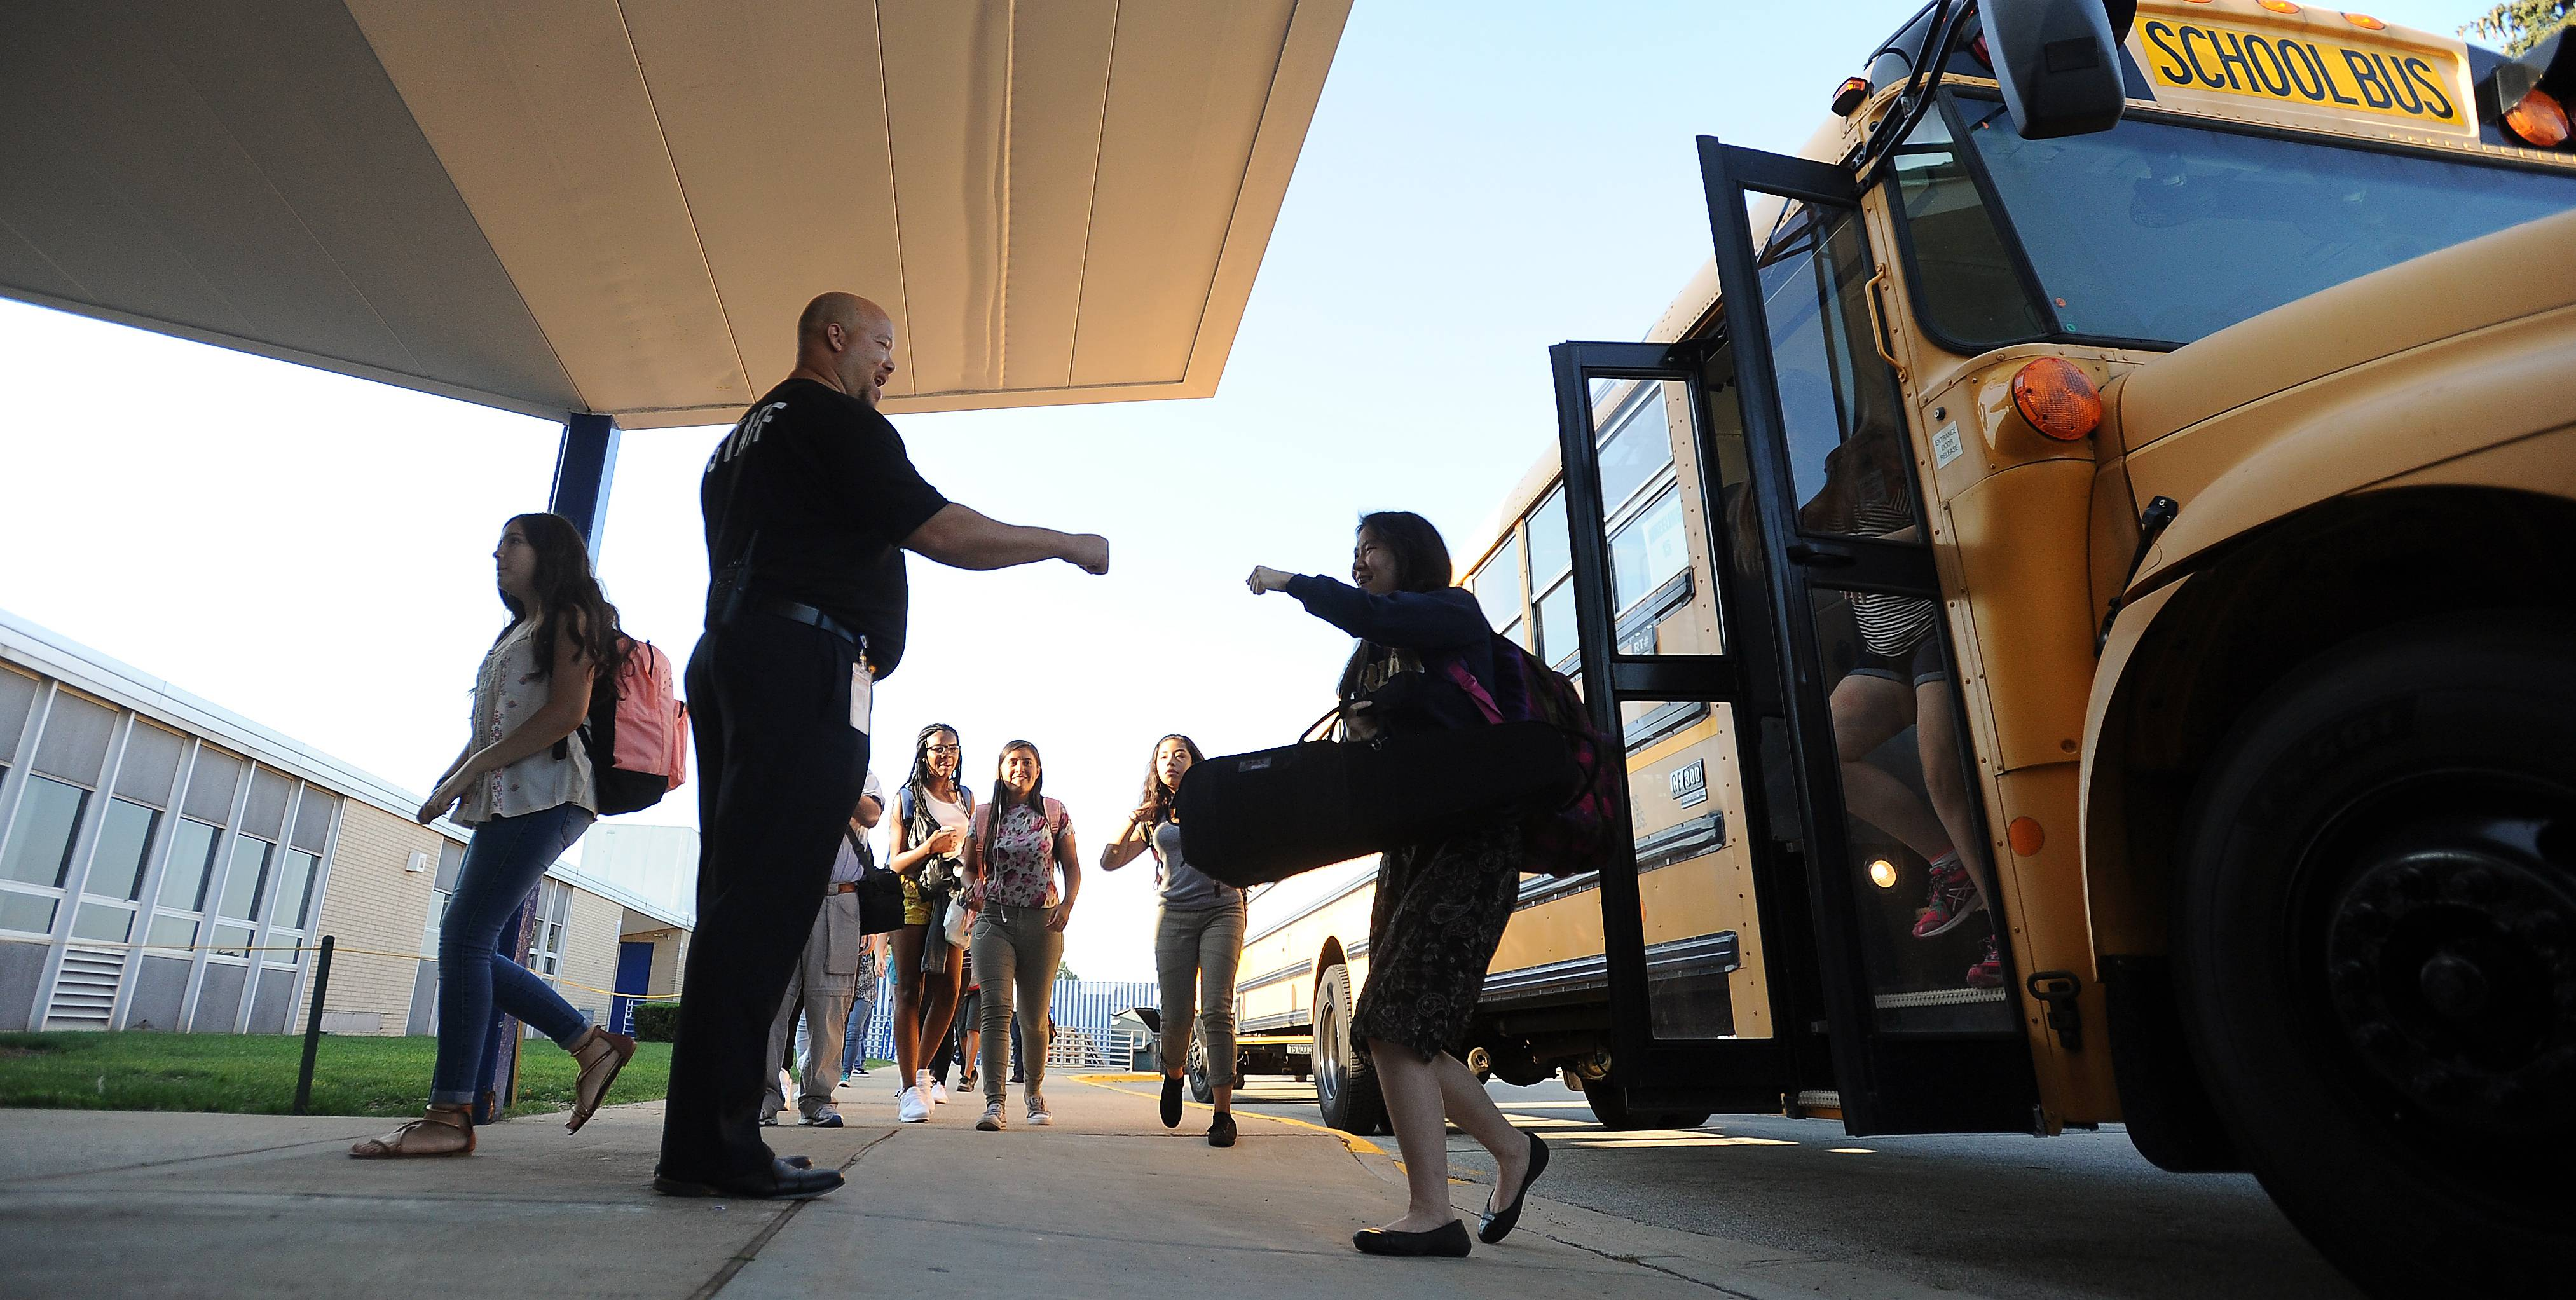 New Wheeling High School Principal Jerry Cook gives a fist bump to a student arriving to school Wednesday morning for the first day of school.